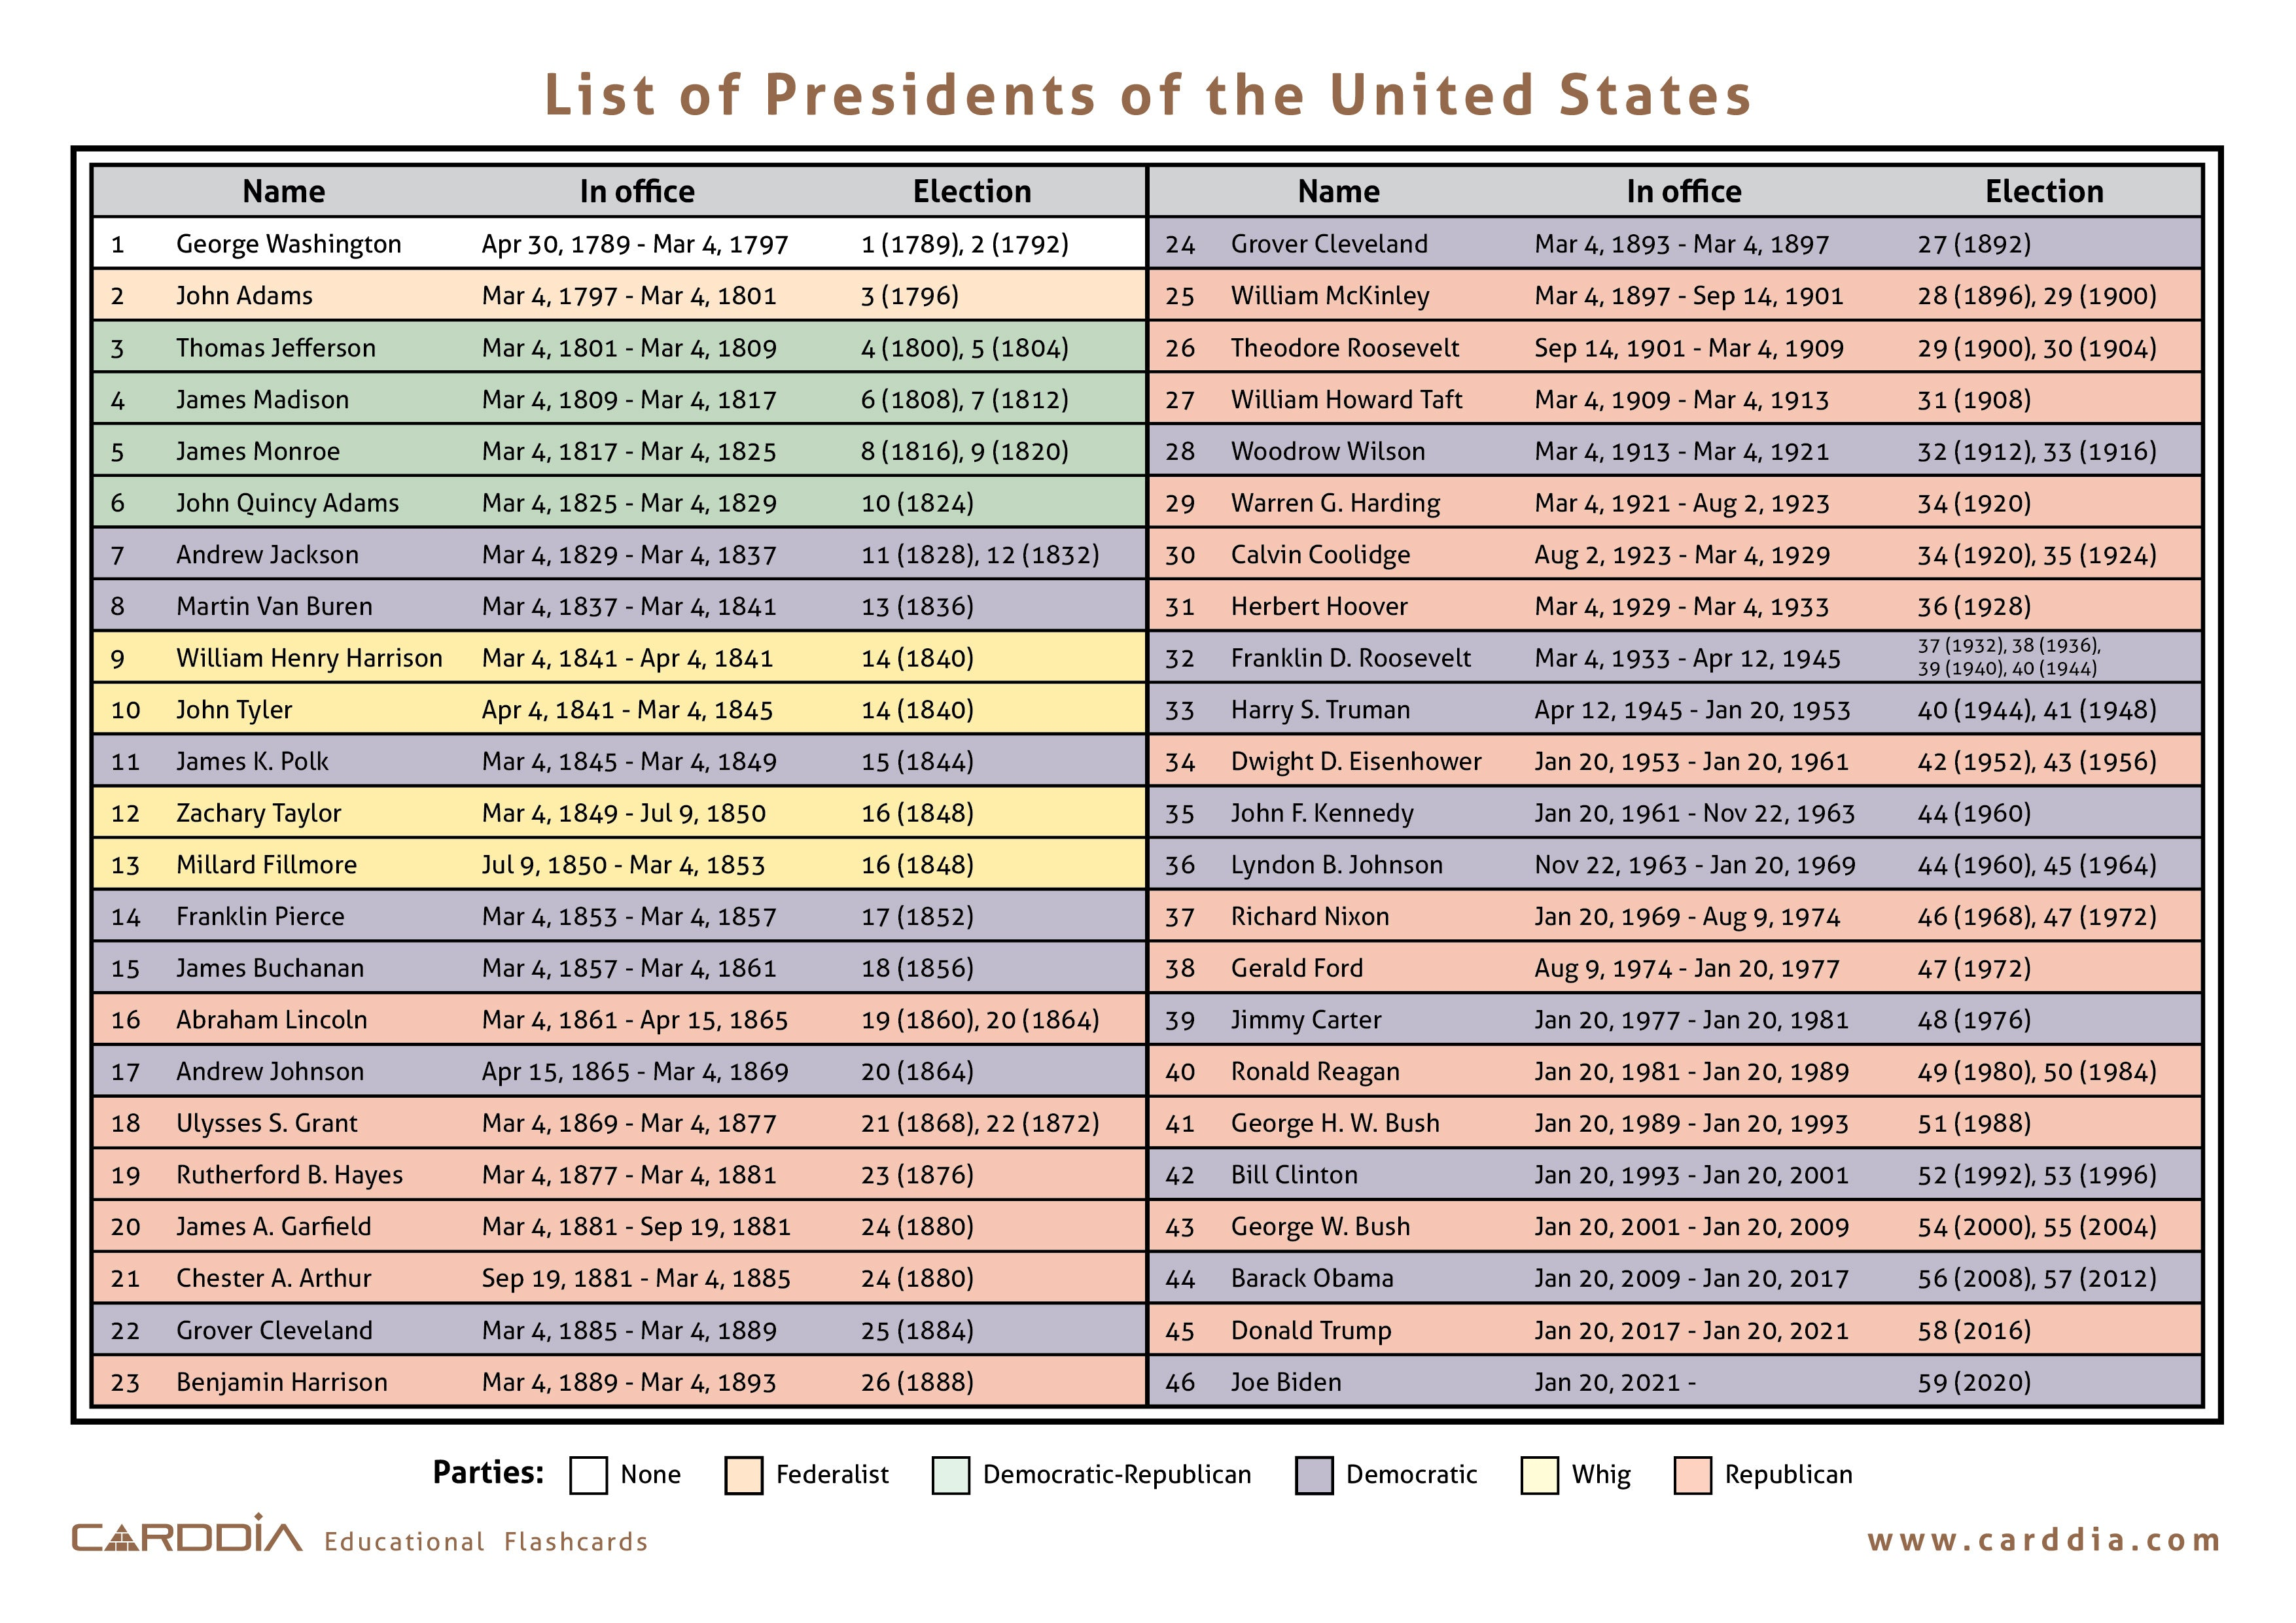 List of Presidents of the United States JPEG